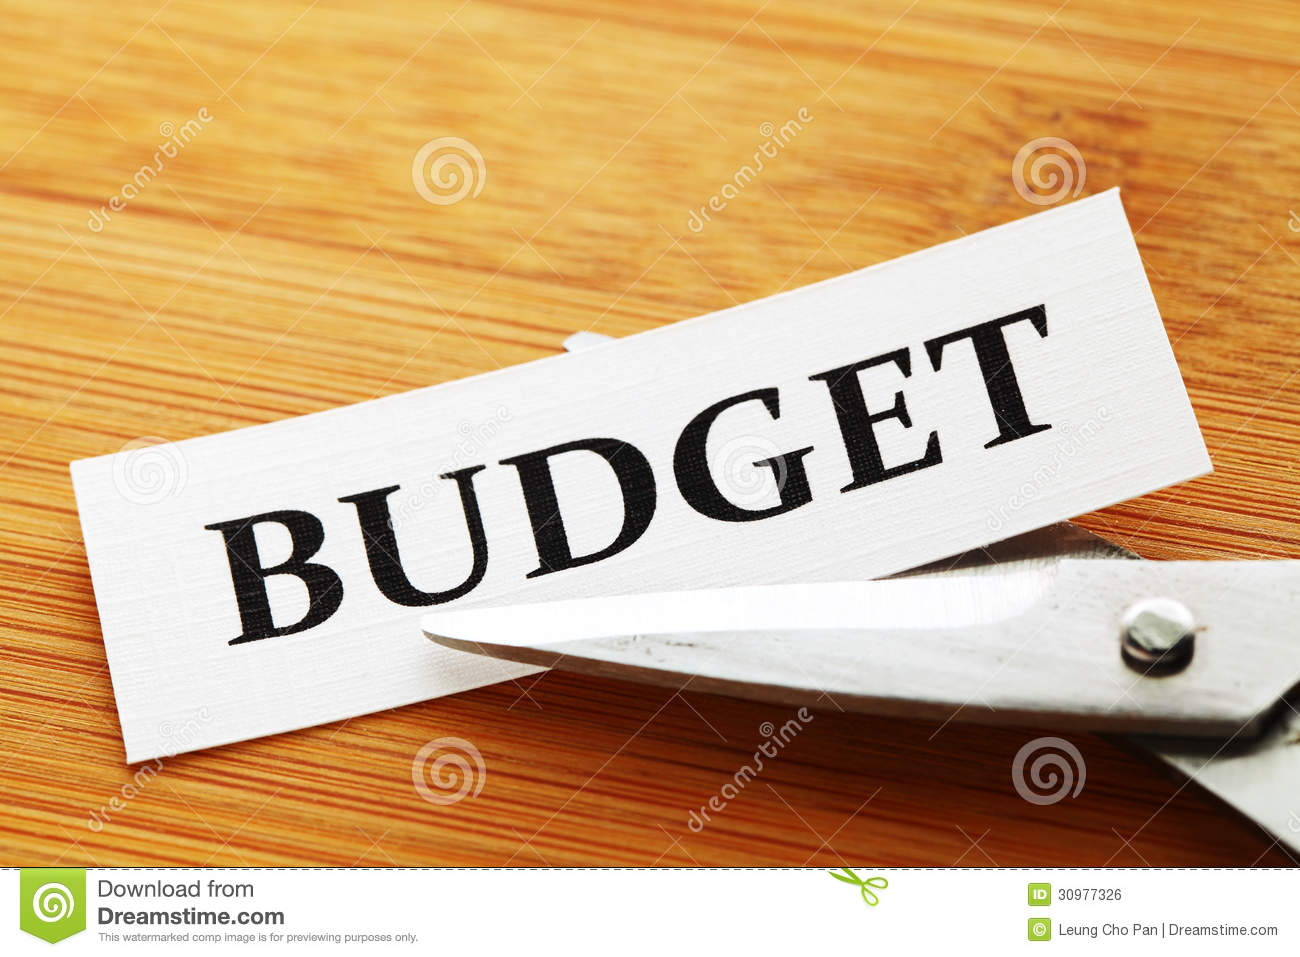 Budget Cut Royalty Free Stock Image   Image  30977326